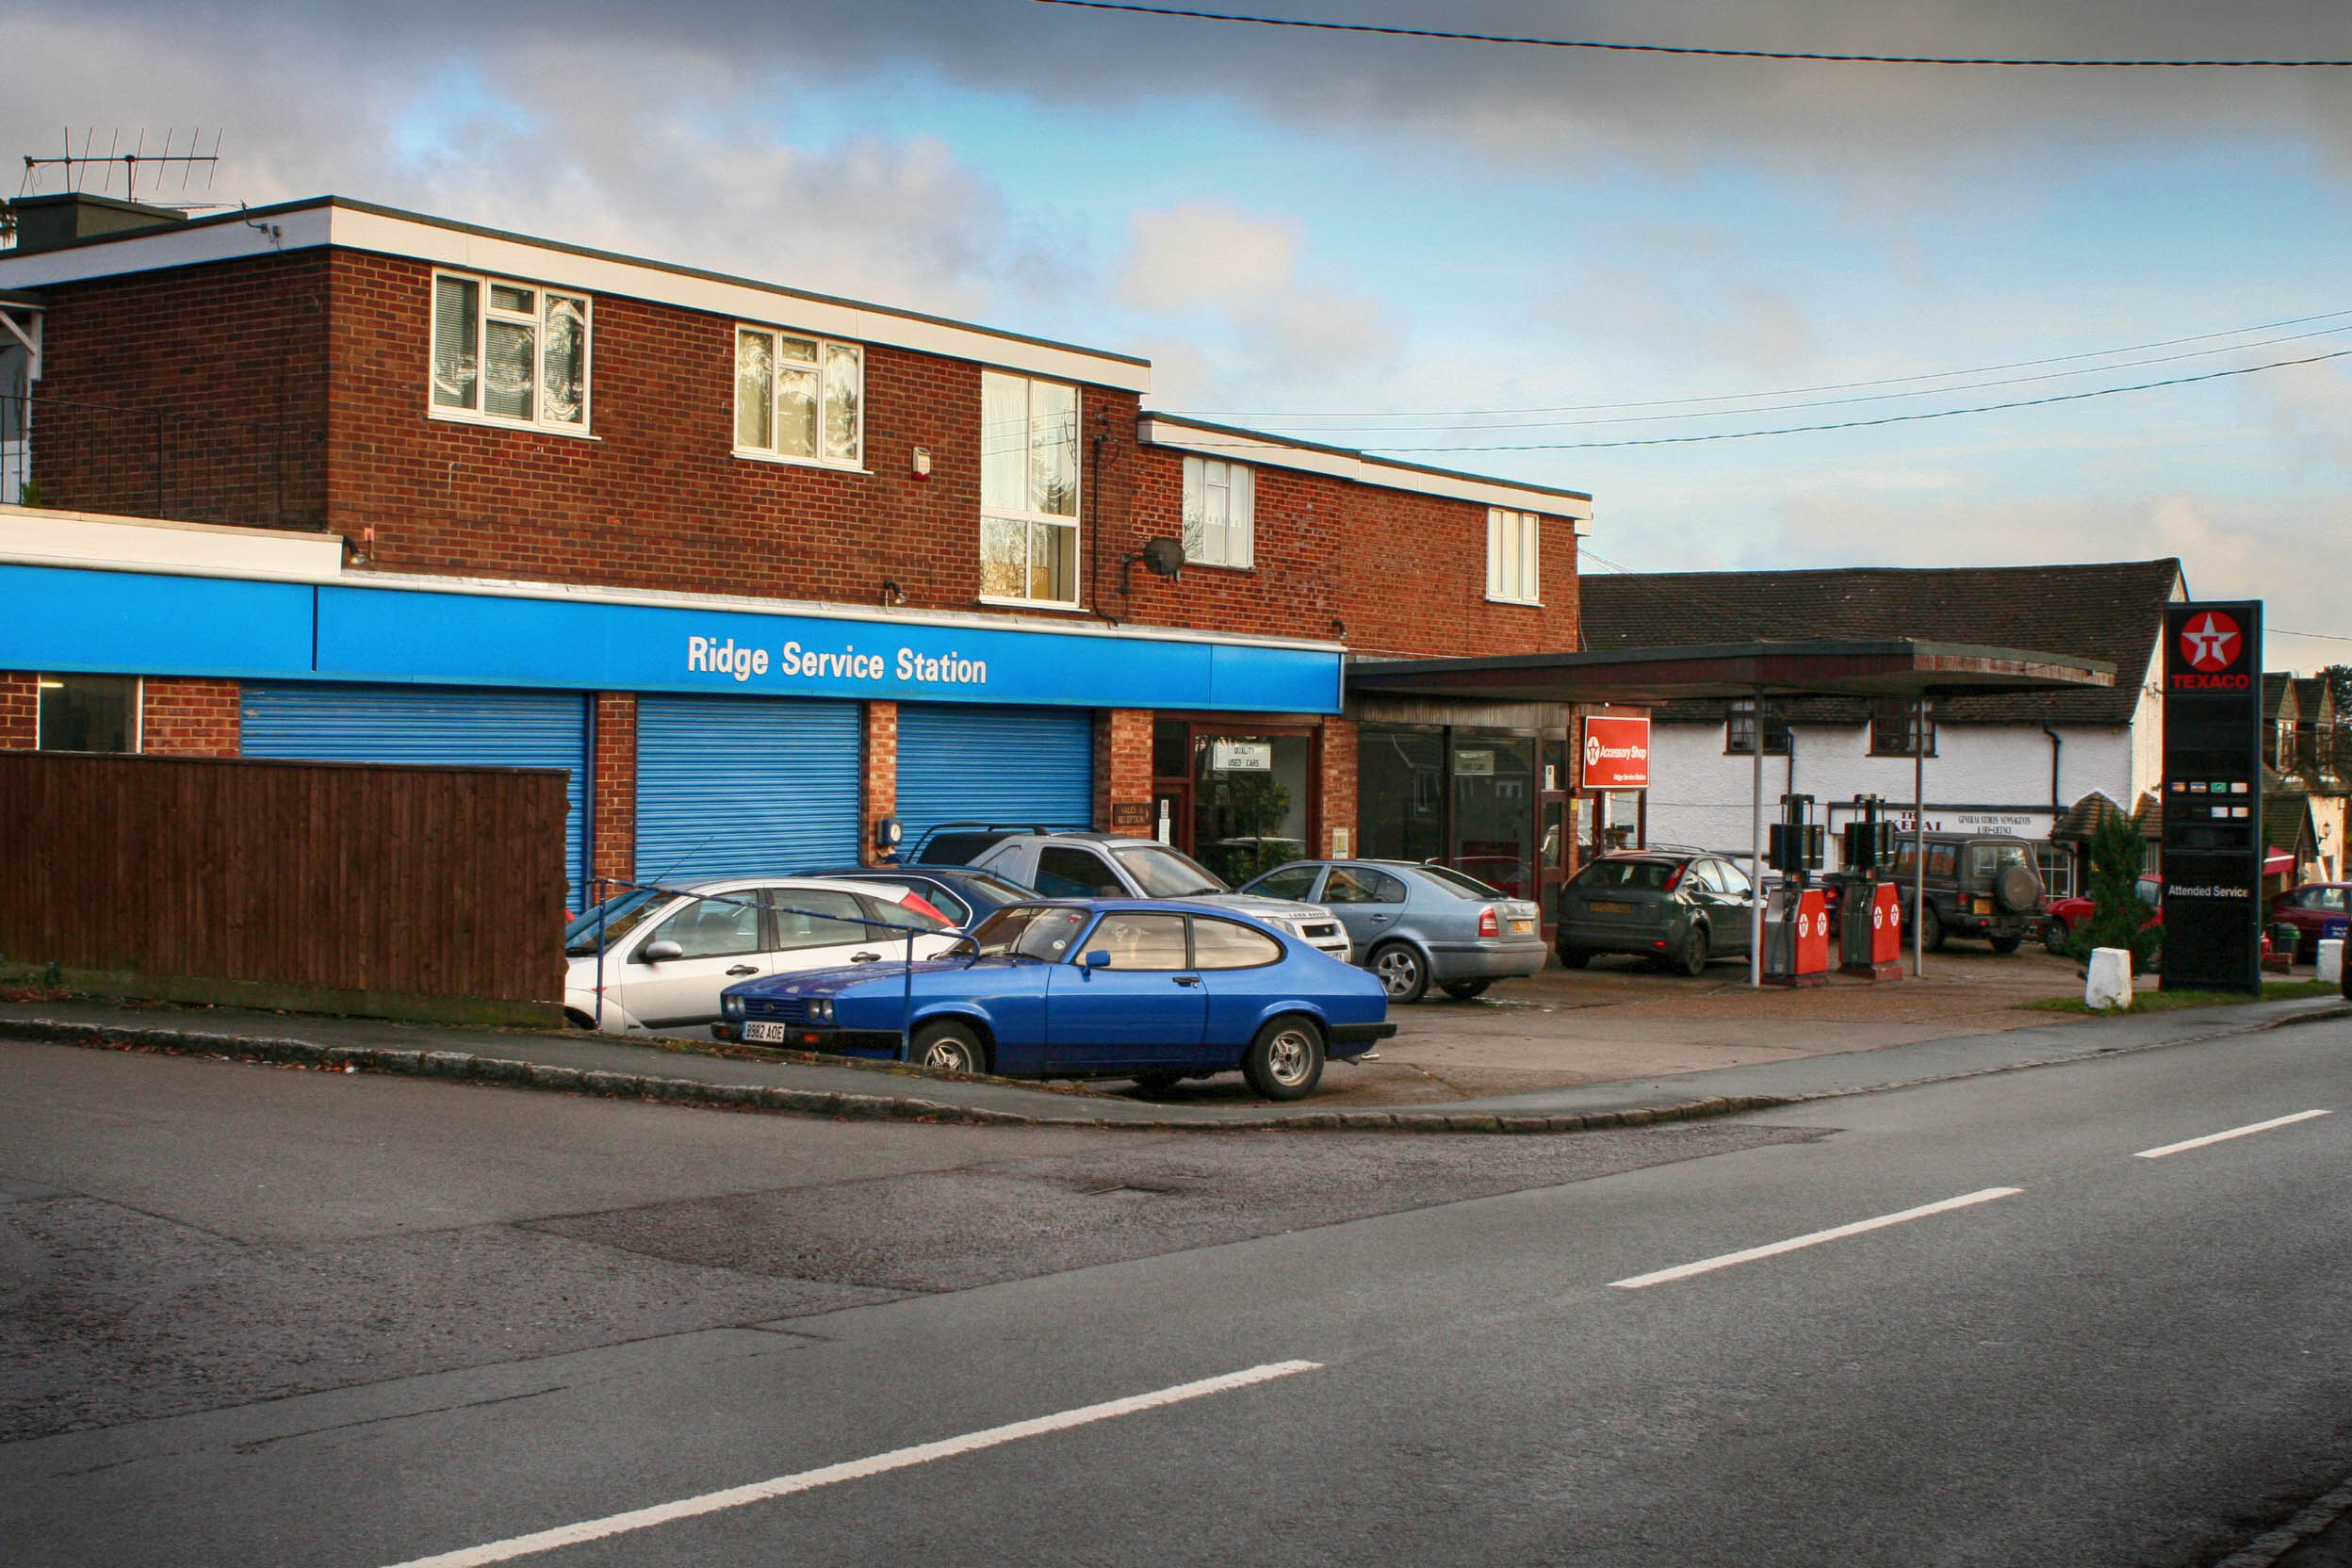 Old service station before development